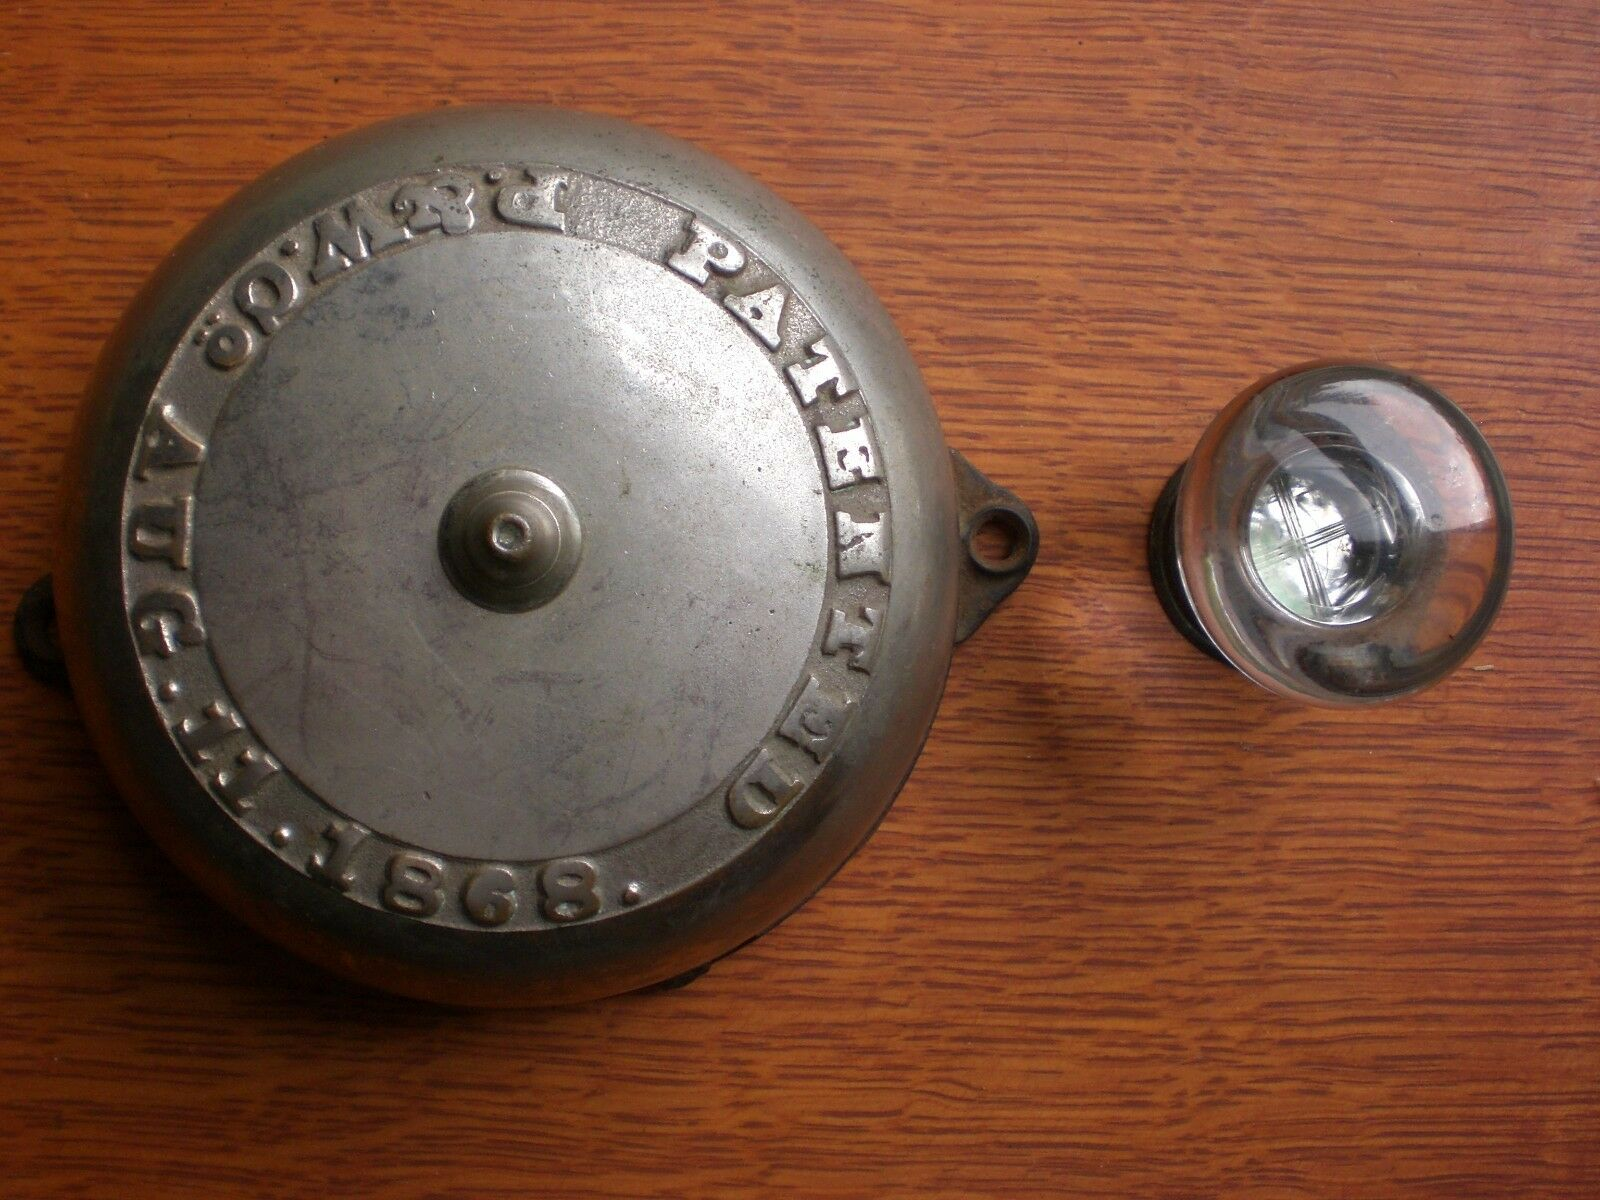 Antique Large Mechanical Nickel Doorbell & Glass Pull 1868 P & W - Dual Ringer